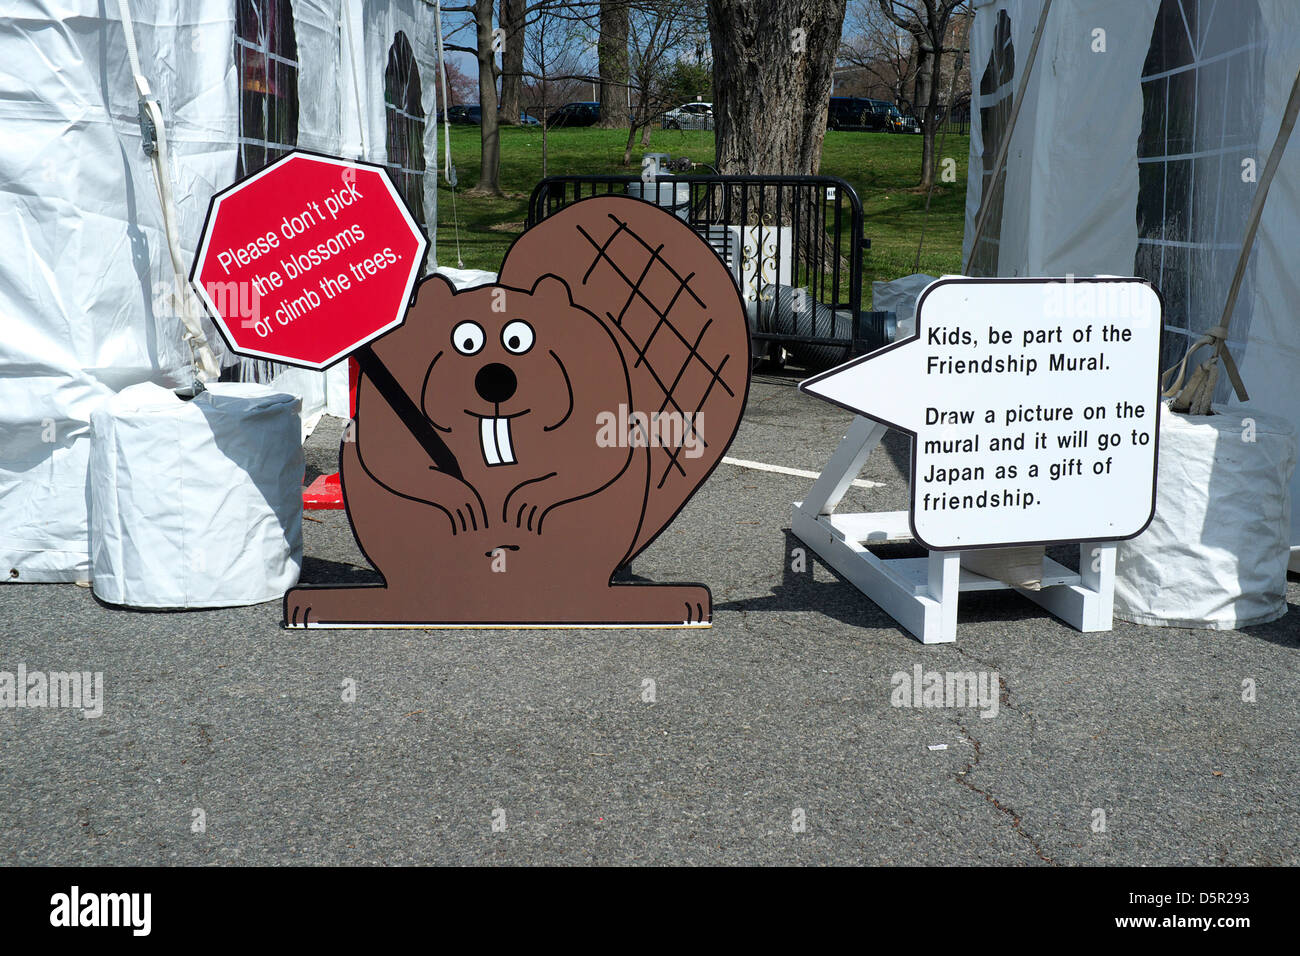 Paddles the Beaver asks you not to pick the blossoms or climb the trees and be part of the friendship mural - gift - Stock Image